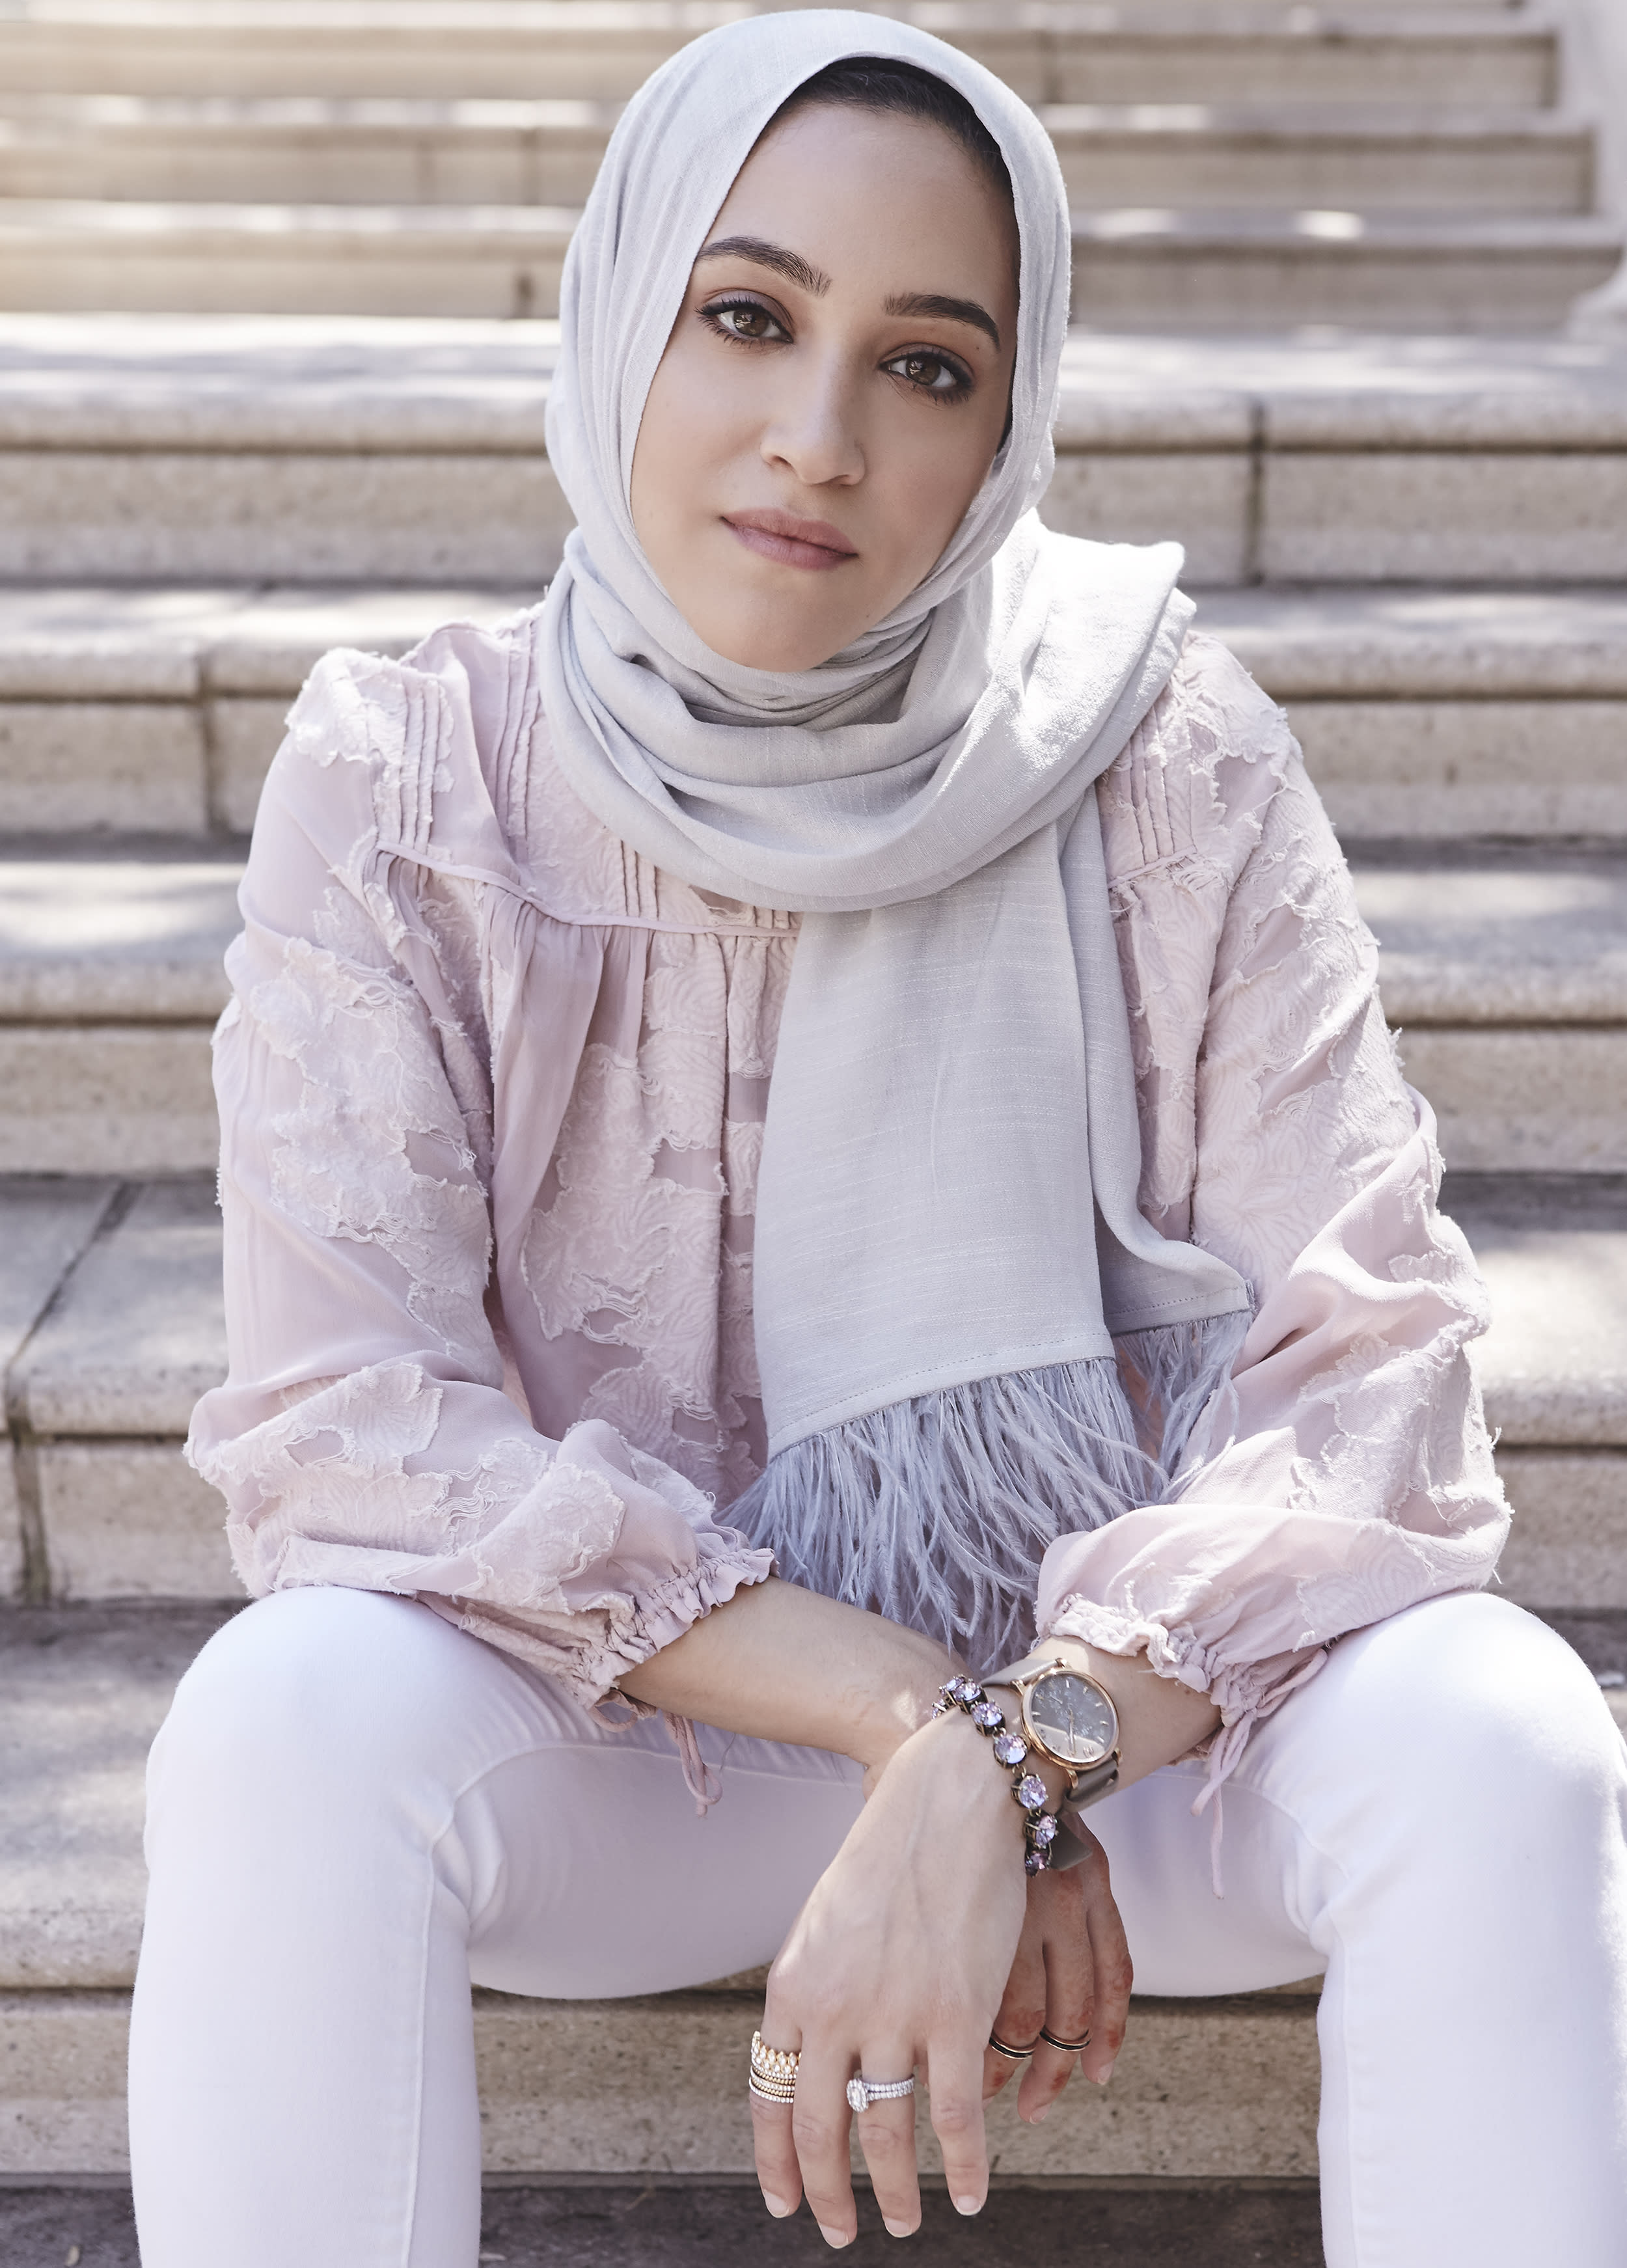 """<p><b>How would you describe your style? </b>My style is classic, but I like to incorporate edgy pieces and trends to keep things modern and relevant. I'm a huge fan of adding a fun hijab like the Framed People feather hijab to pull my look together. I believe fashion is in the eye of the beholder. We're in a world where we get on social media for outfit inspiration and can easily replicate an outfit we saw on a celebrity. This can be a double-edged sword, because while it can solve our dilemma of needing an outfit, we may all end up looking the same and can lose our originality. If there's one thing I live by when it comes to style and fashion, it's to be daring. Challenge yourself and don't be so hard on yourself, because in the end, what matters is feeling beautiful and comfortable.<br>Check out <a href=""""https://www.framedpeople.com/"""" rel=""""nofollow noopener"""" target=""""_blank"""" data-ylk=""""slk:Framed People"""" class=""""link rapid-noclick-resp"""">Framed People</a>.<br>(Photo: Jamie Berg for Yahoo Lifestyle) </p>"""